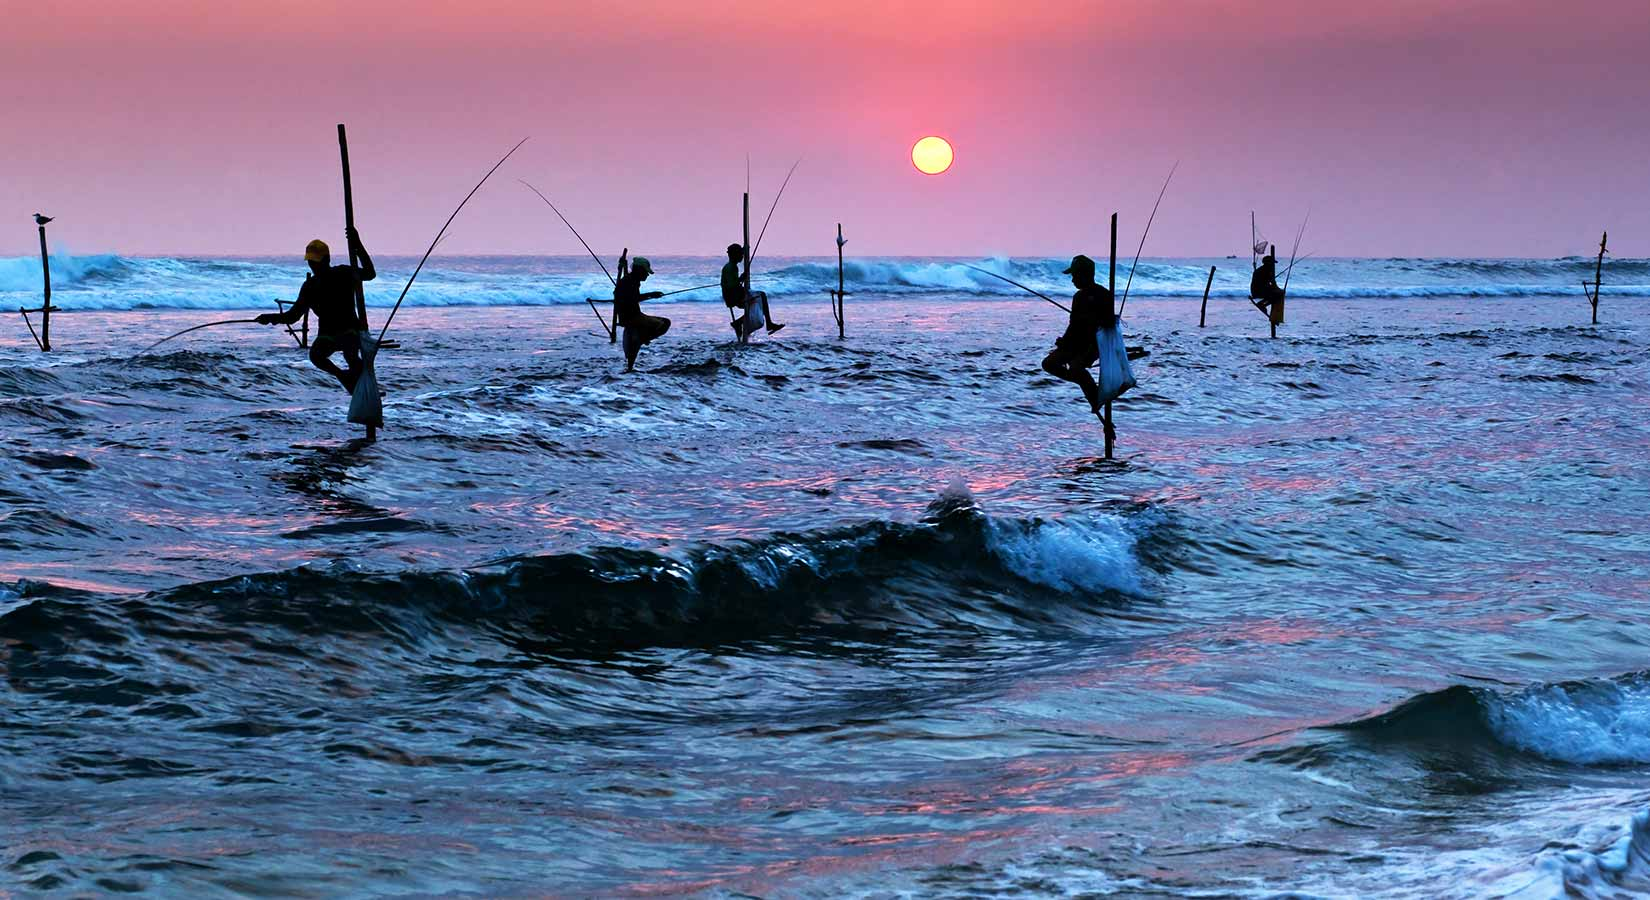 https://www.steuartholidays.com/wp-content/uploads/2019/03/Stilt-fishing-1.jpg